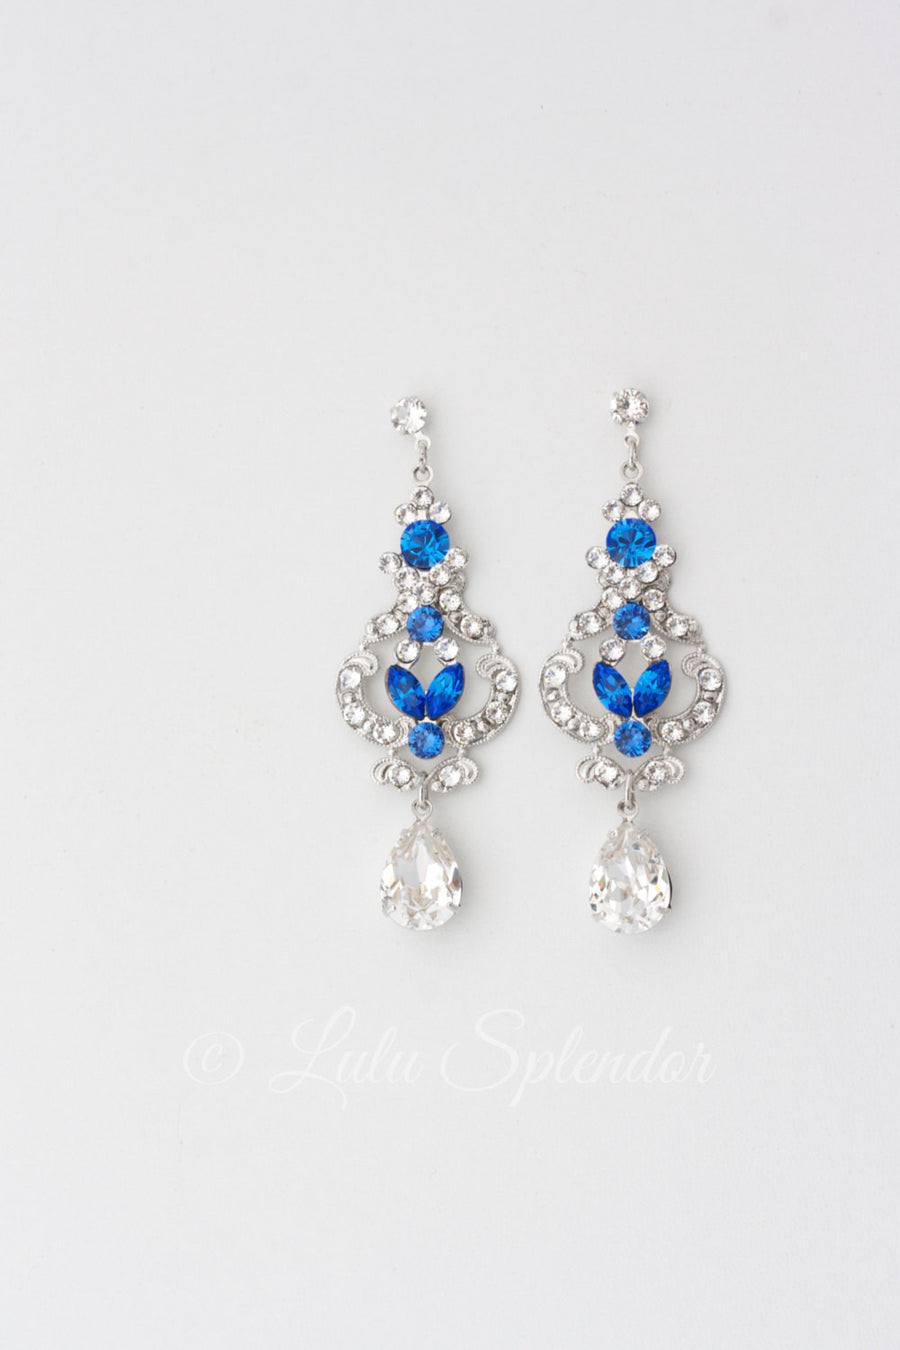 FRANCES MID WEDDING EARRINGS - Lulu Splendor